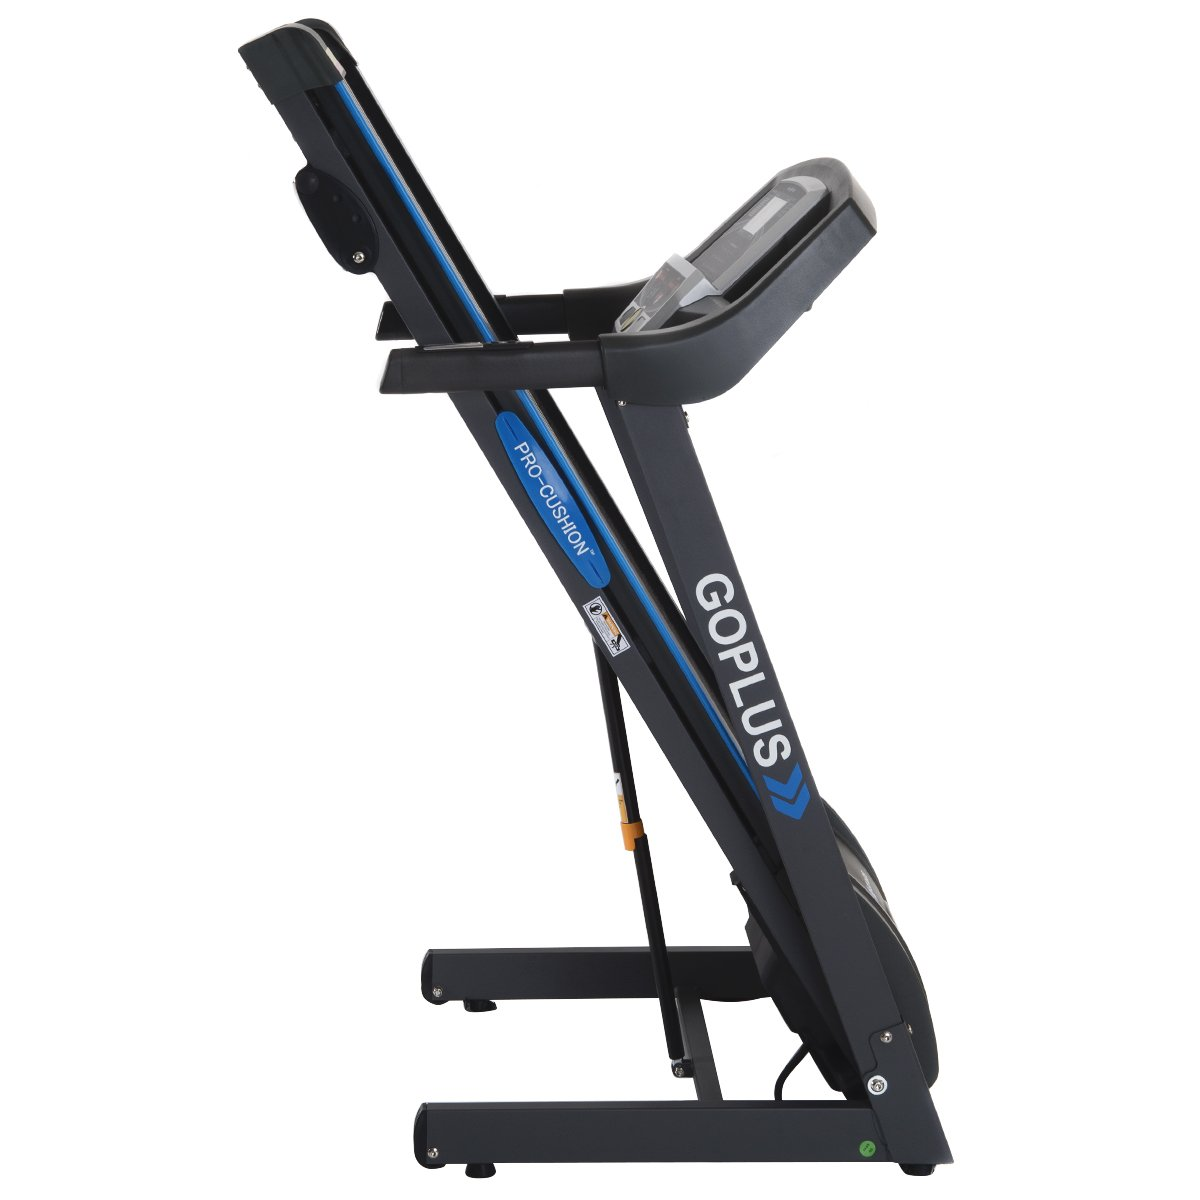 Goplus 2.25HP Folding Treadmill Electric Support Motorized Power Running Fitness Jogging Incline Machine g Fitness Jogging Incline Machine Fitness Jogging Incline Machine Black Jaguar Ⅱ(Classic) by Goplus (Image #5)